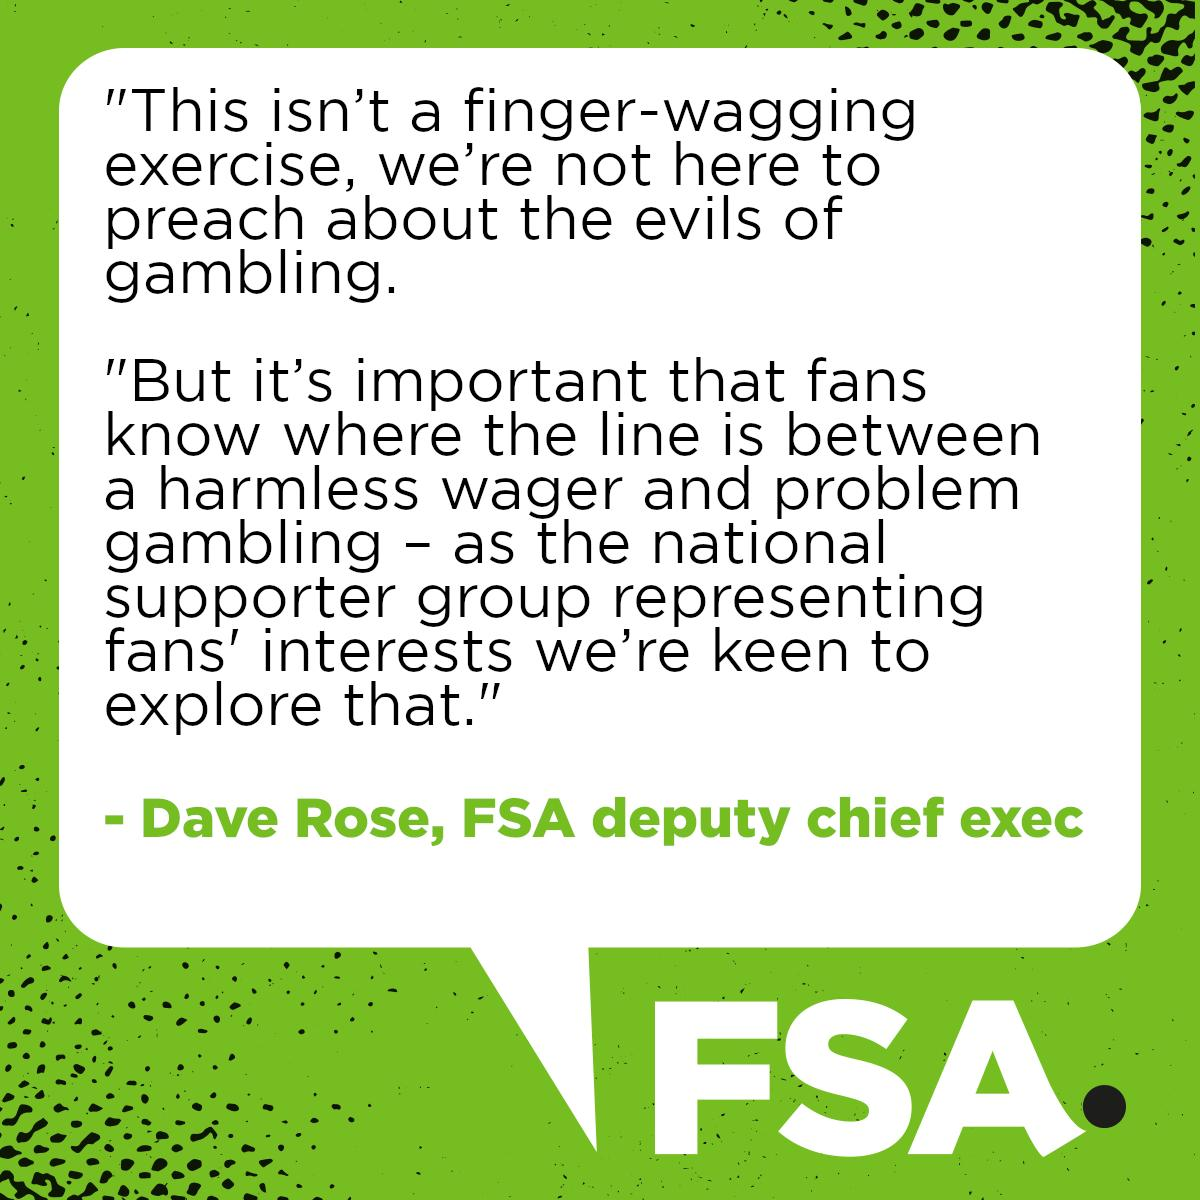 Weve launched a new survey about the role of gambling at the match - it only takes two minutes and wed appreciated your input. Take part here: surveymonkey.co.uk/r/fsa-gambling